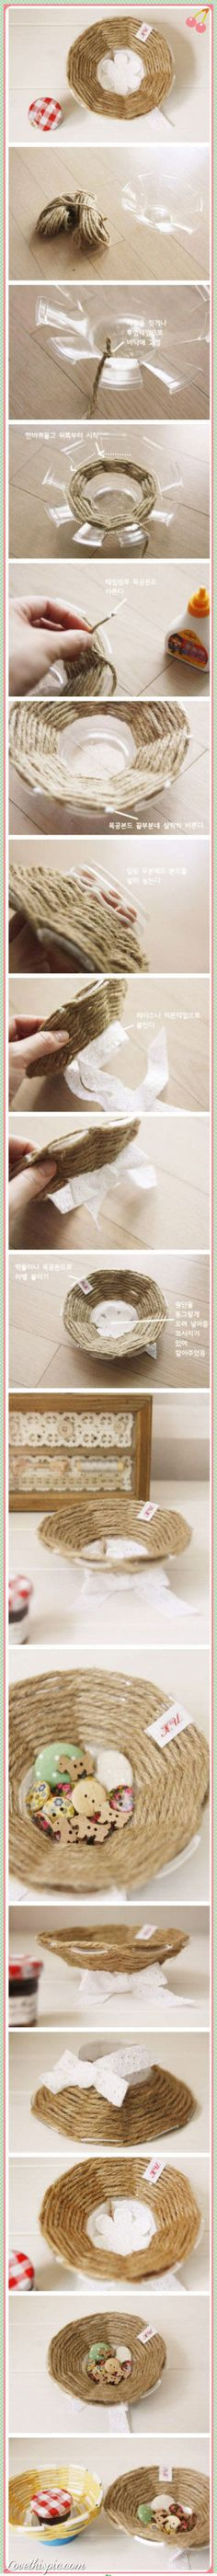 Weaving on a plastic cup add long twine to hang by and bird food Diy And Crafts, Crafts For Kids, Arts And Crafts, Diy Projects To Try, Craft Projects, Diy Love, Plastic Bottle Crafts, Plastic Bottles, Plastic Cups